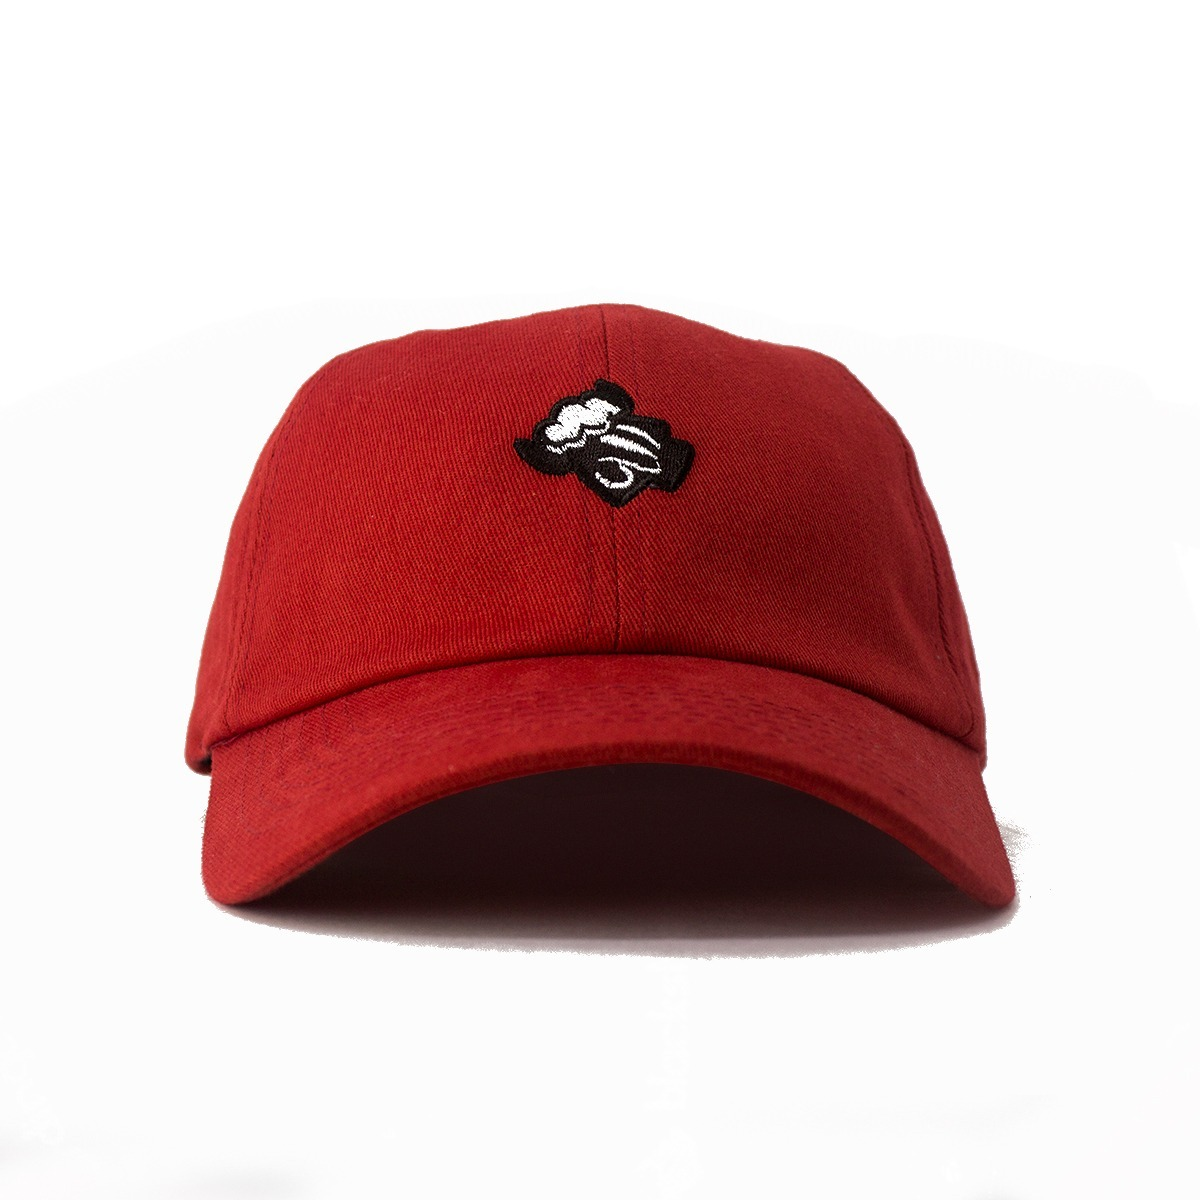 Bone Black Sheep Aba Curva Face Ovelha Vermelho Original - R  57 ae3269e36a6